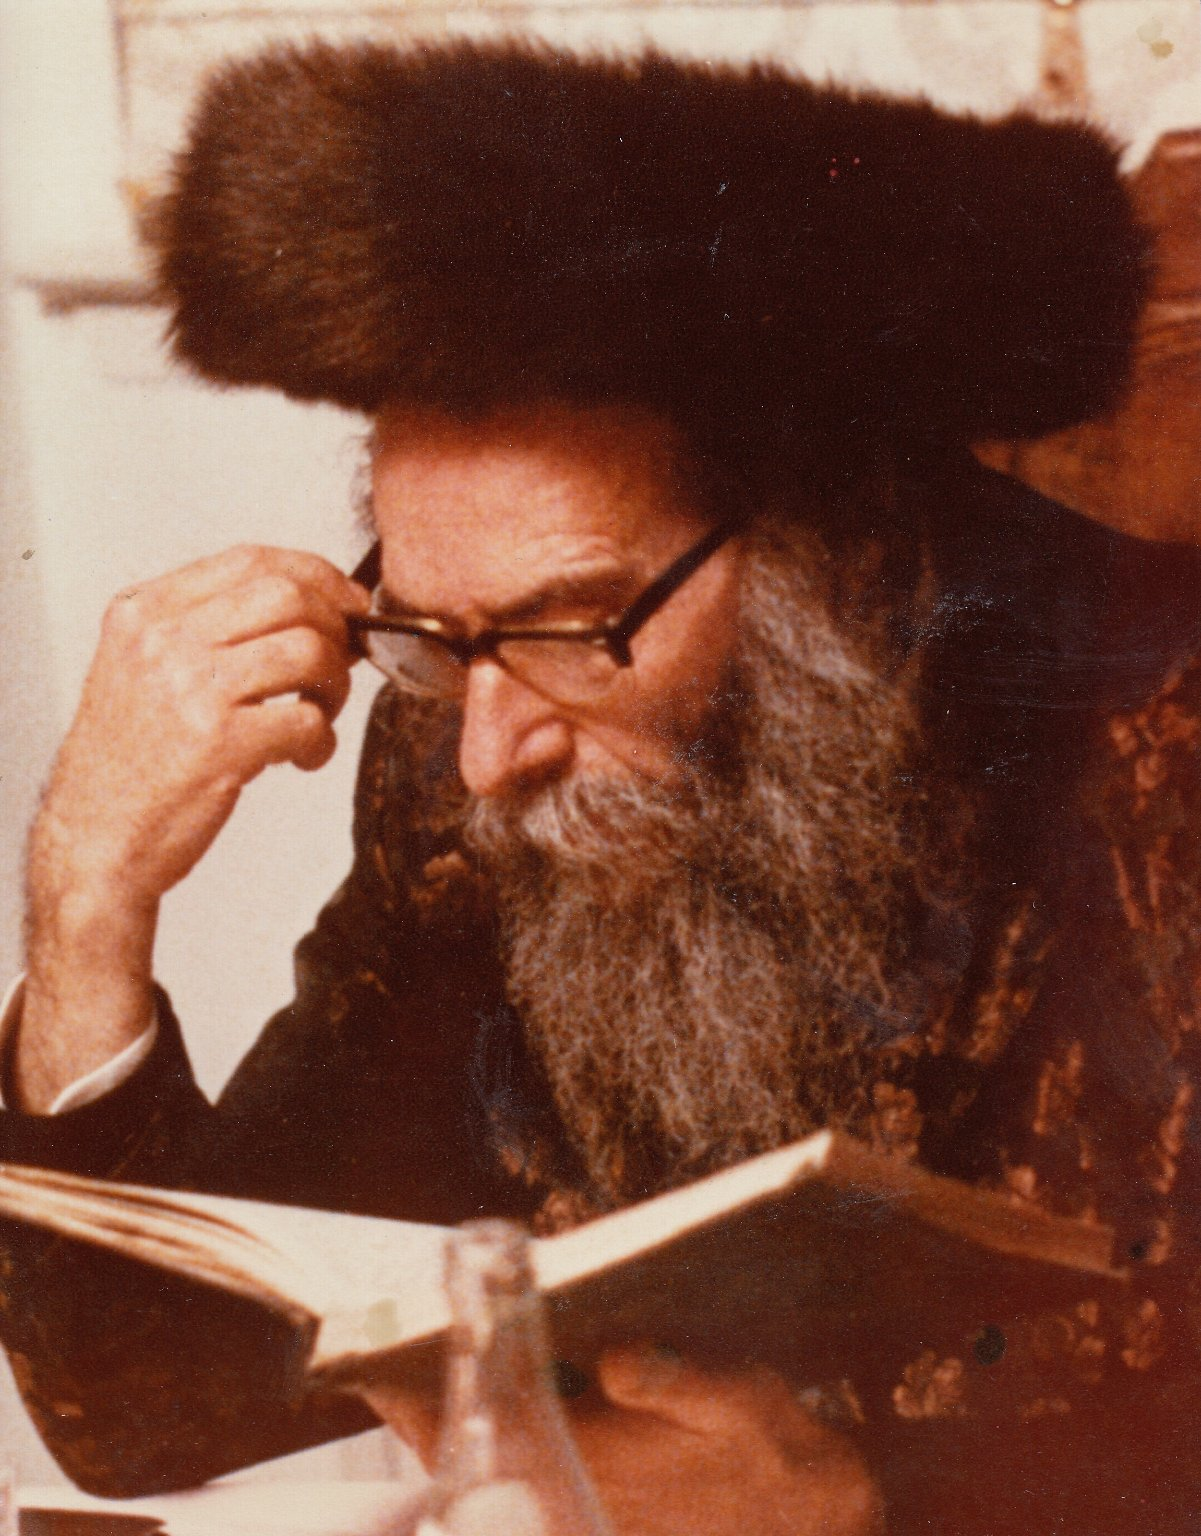 Rabbi Gedaliah Kenig studying from a book.